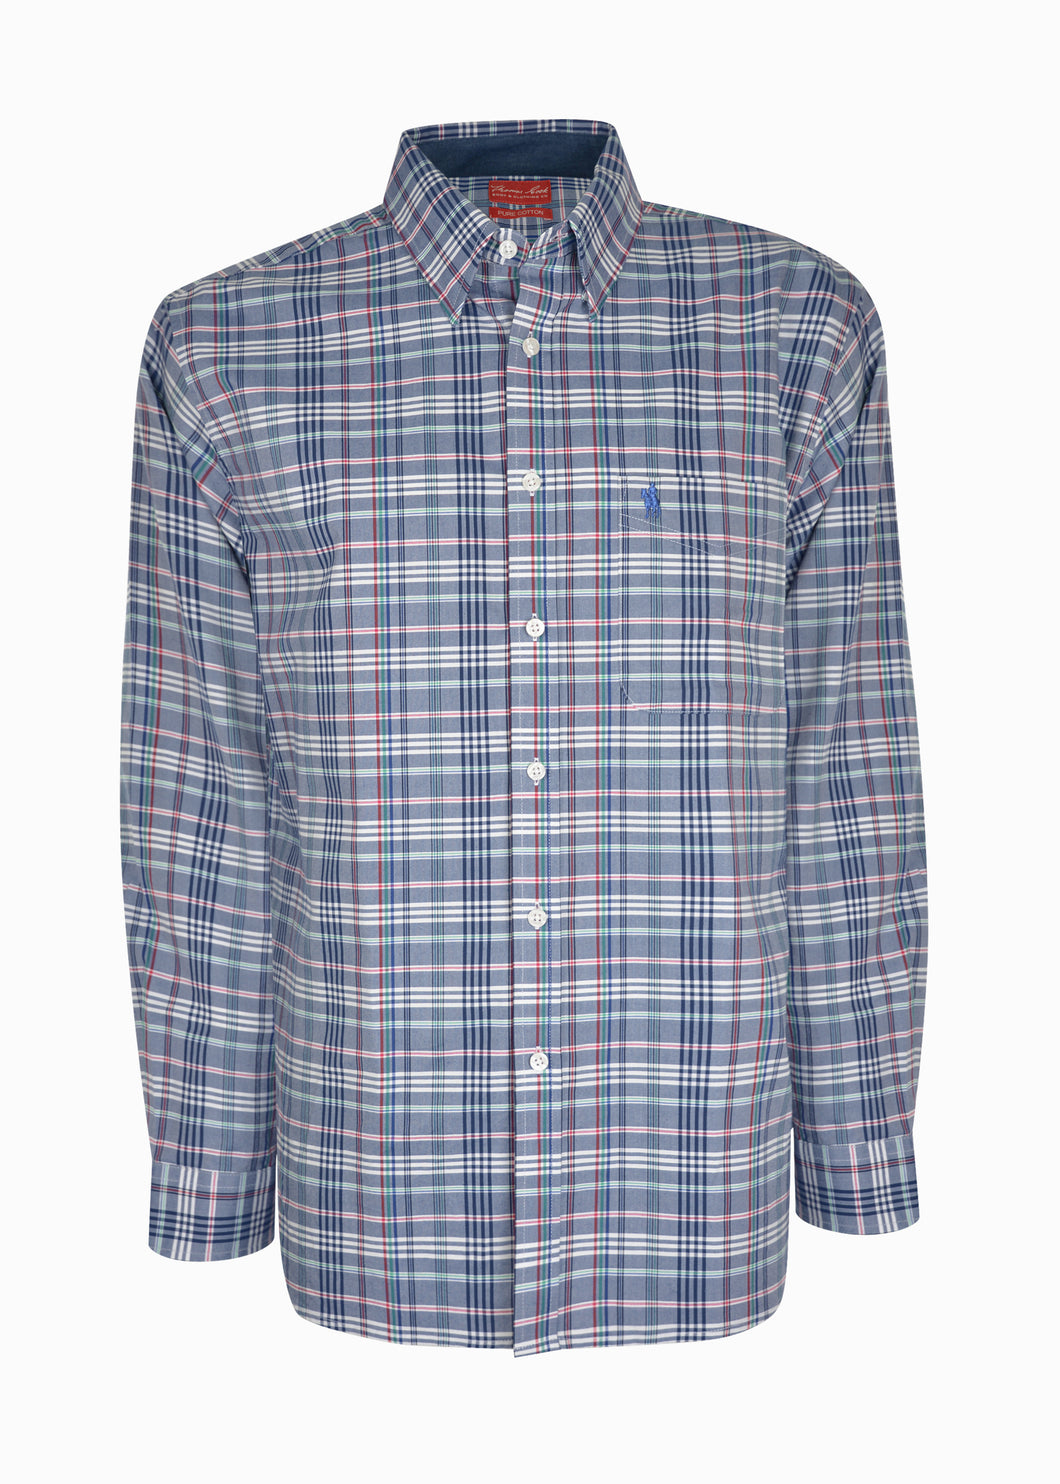 MENS BETTS 1-PKT L/S SHIRT